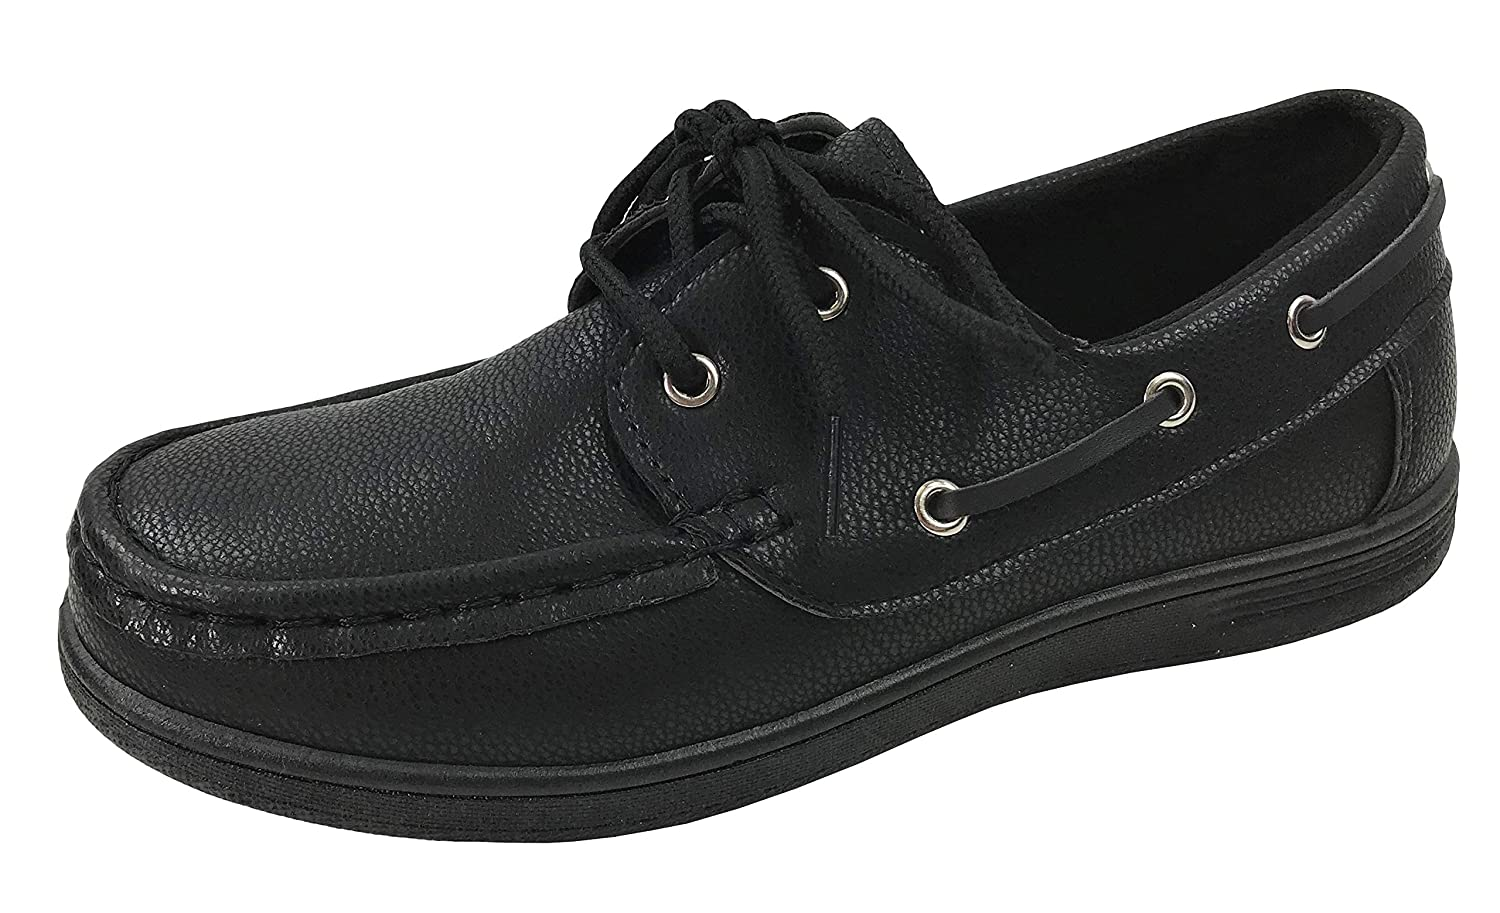 Boys Classic Faux Leather Boat Shoe Oxford Dress Lace-Up Loafer